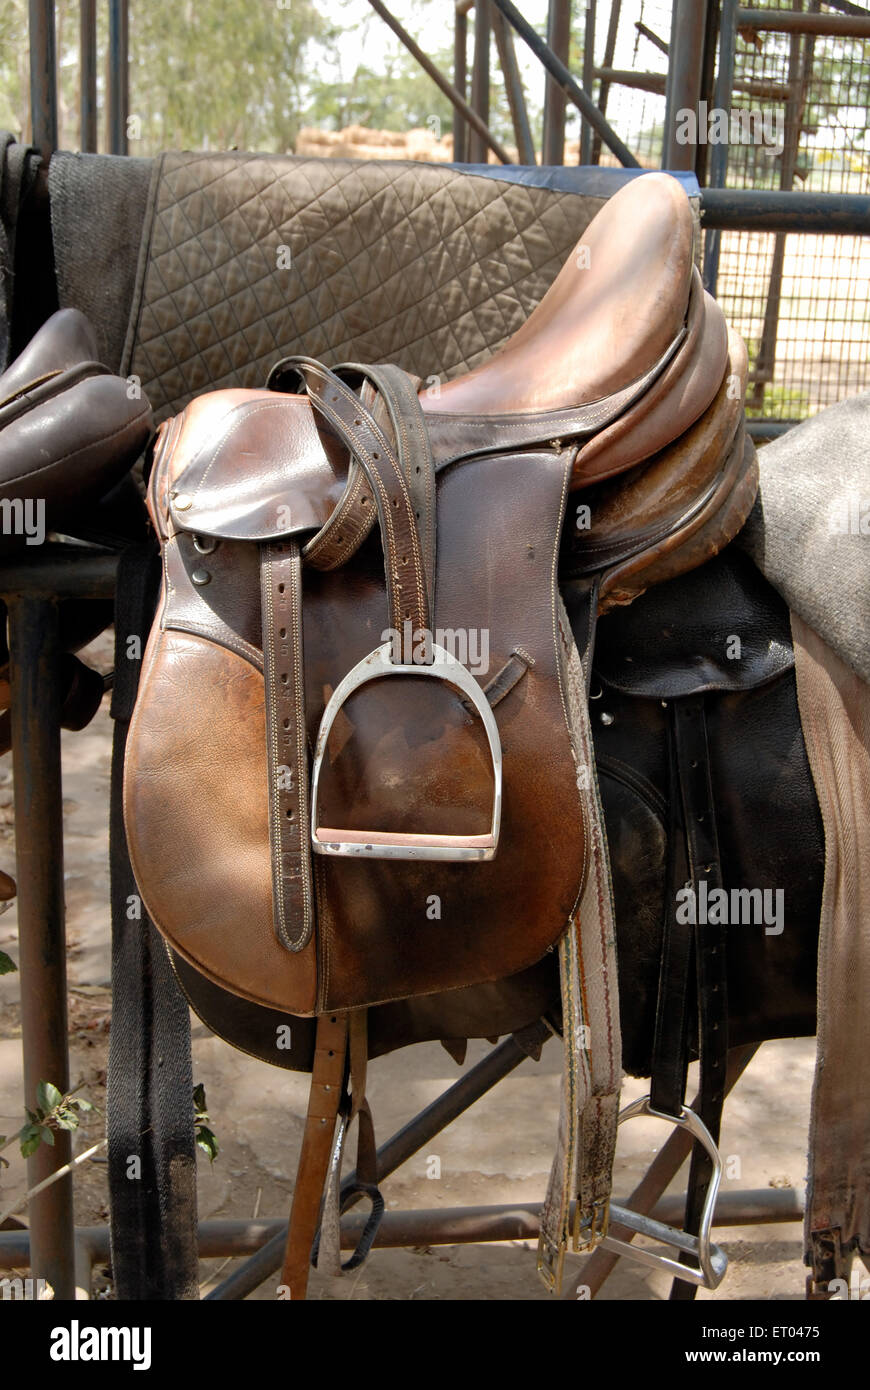 Horse riding gear 2008 - Stock Image